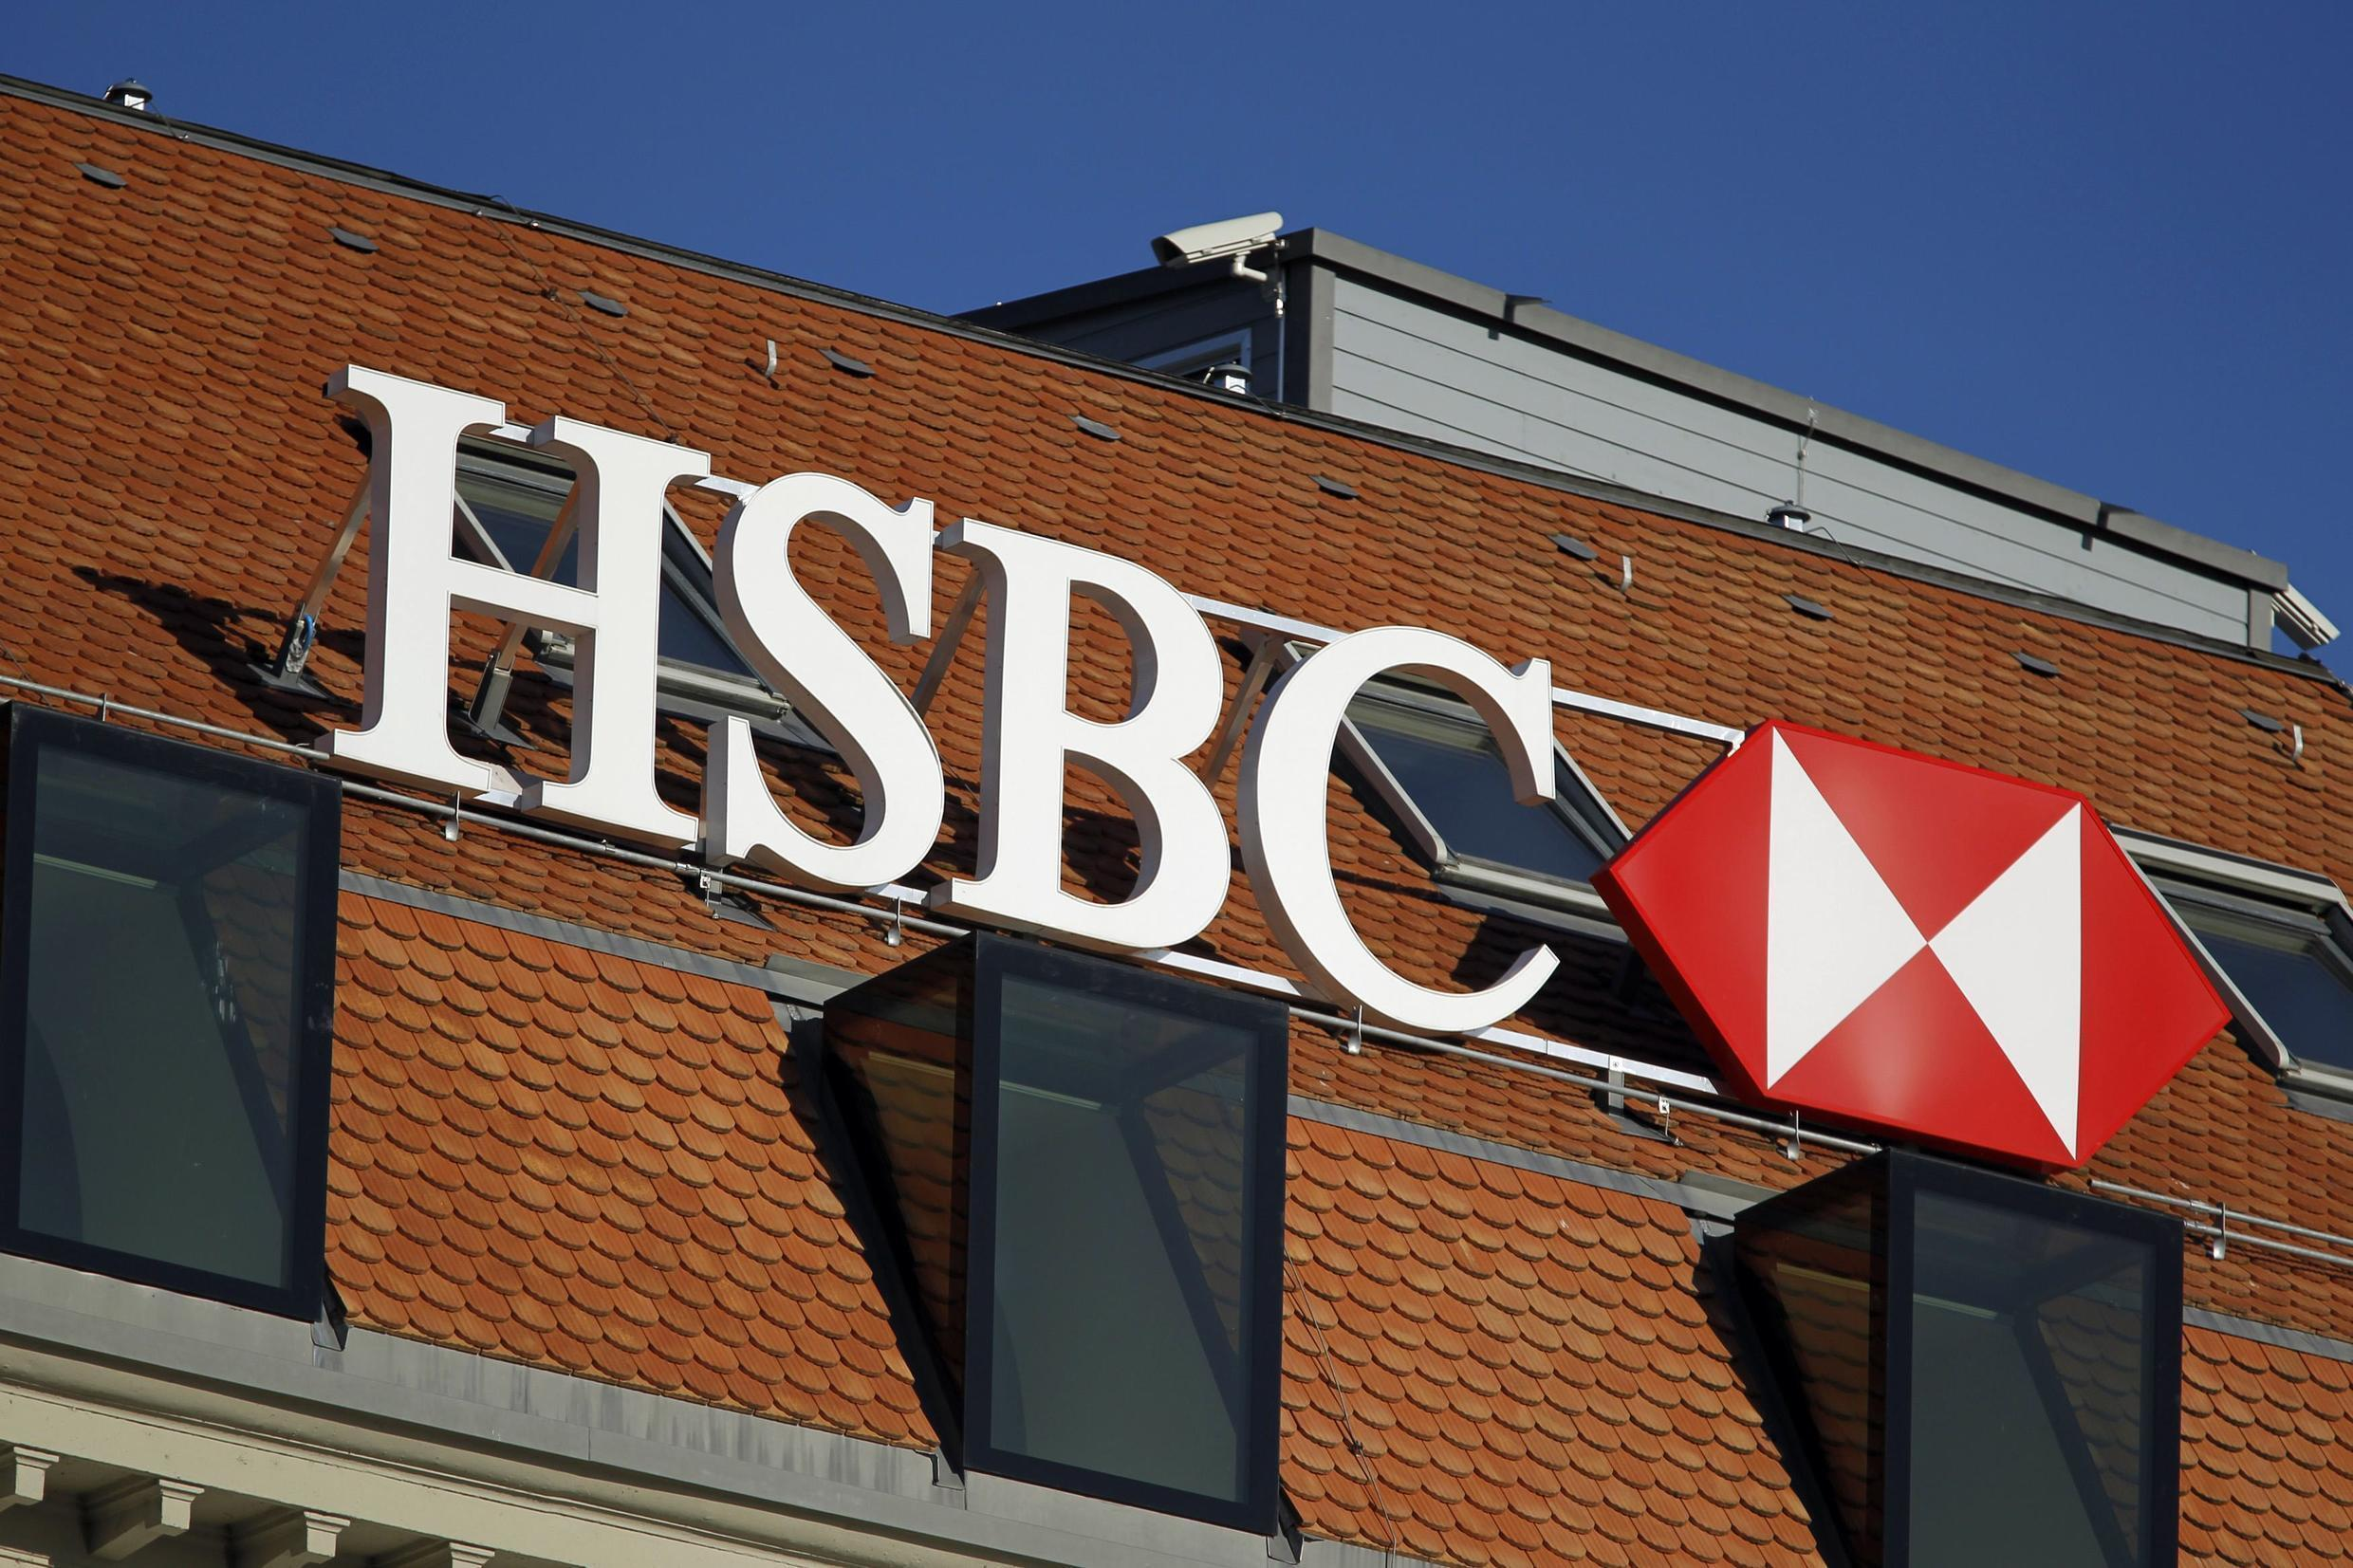 An HSBC logo in Geneva, February 2015. HSBC's Swiss subsidiary is being pursued by French authorities